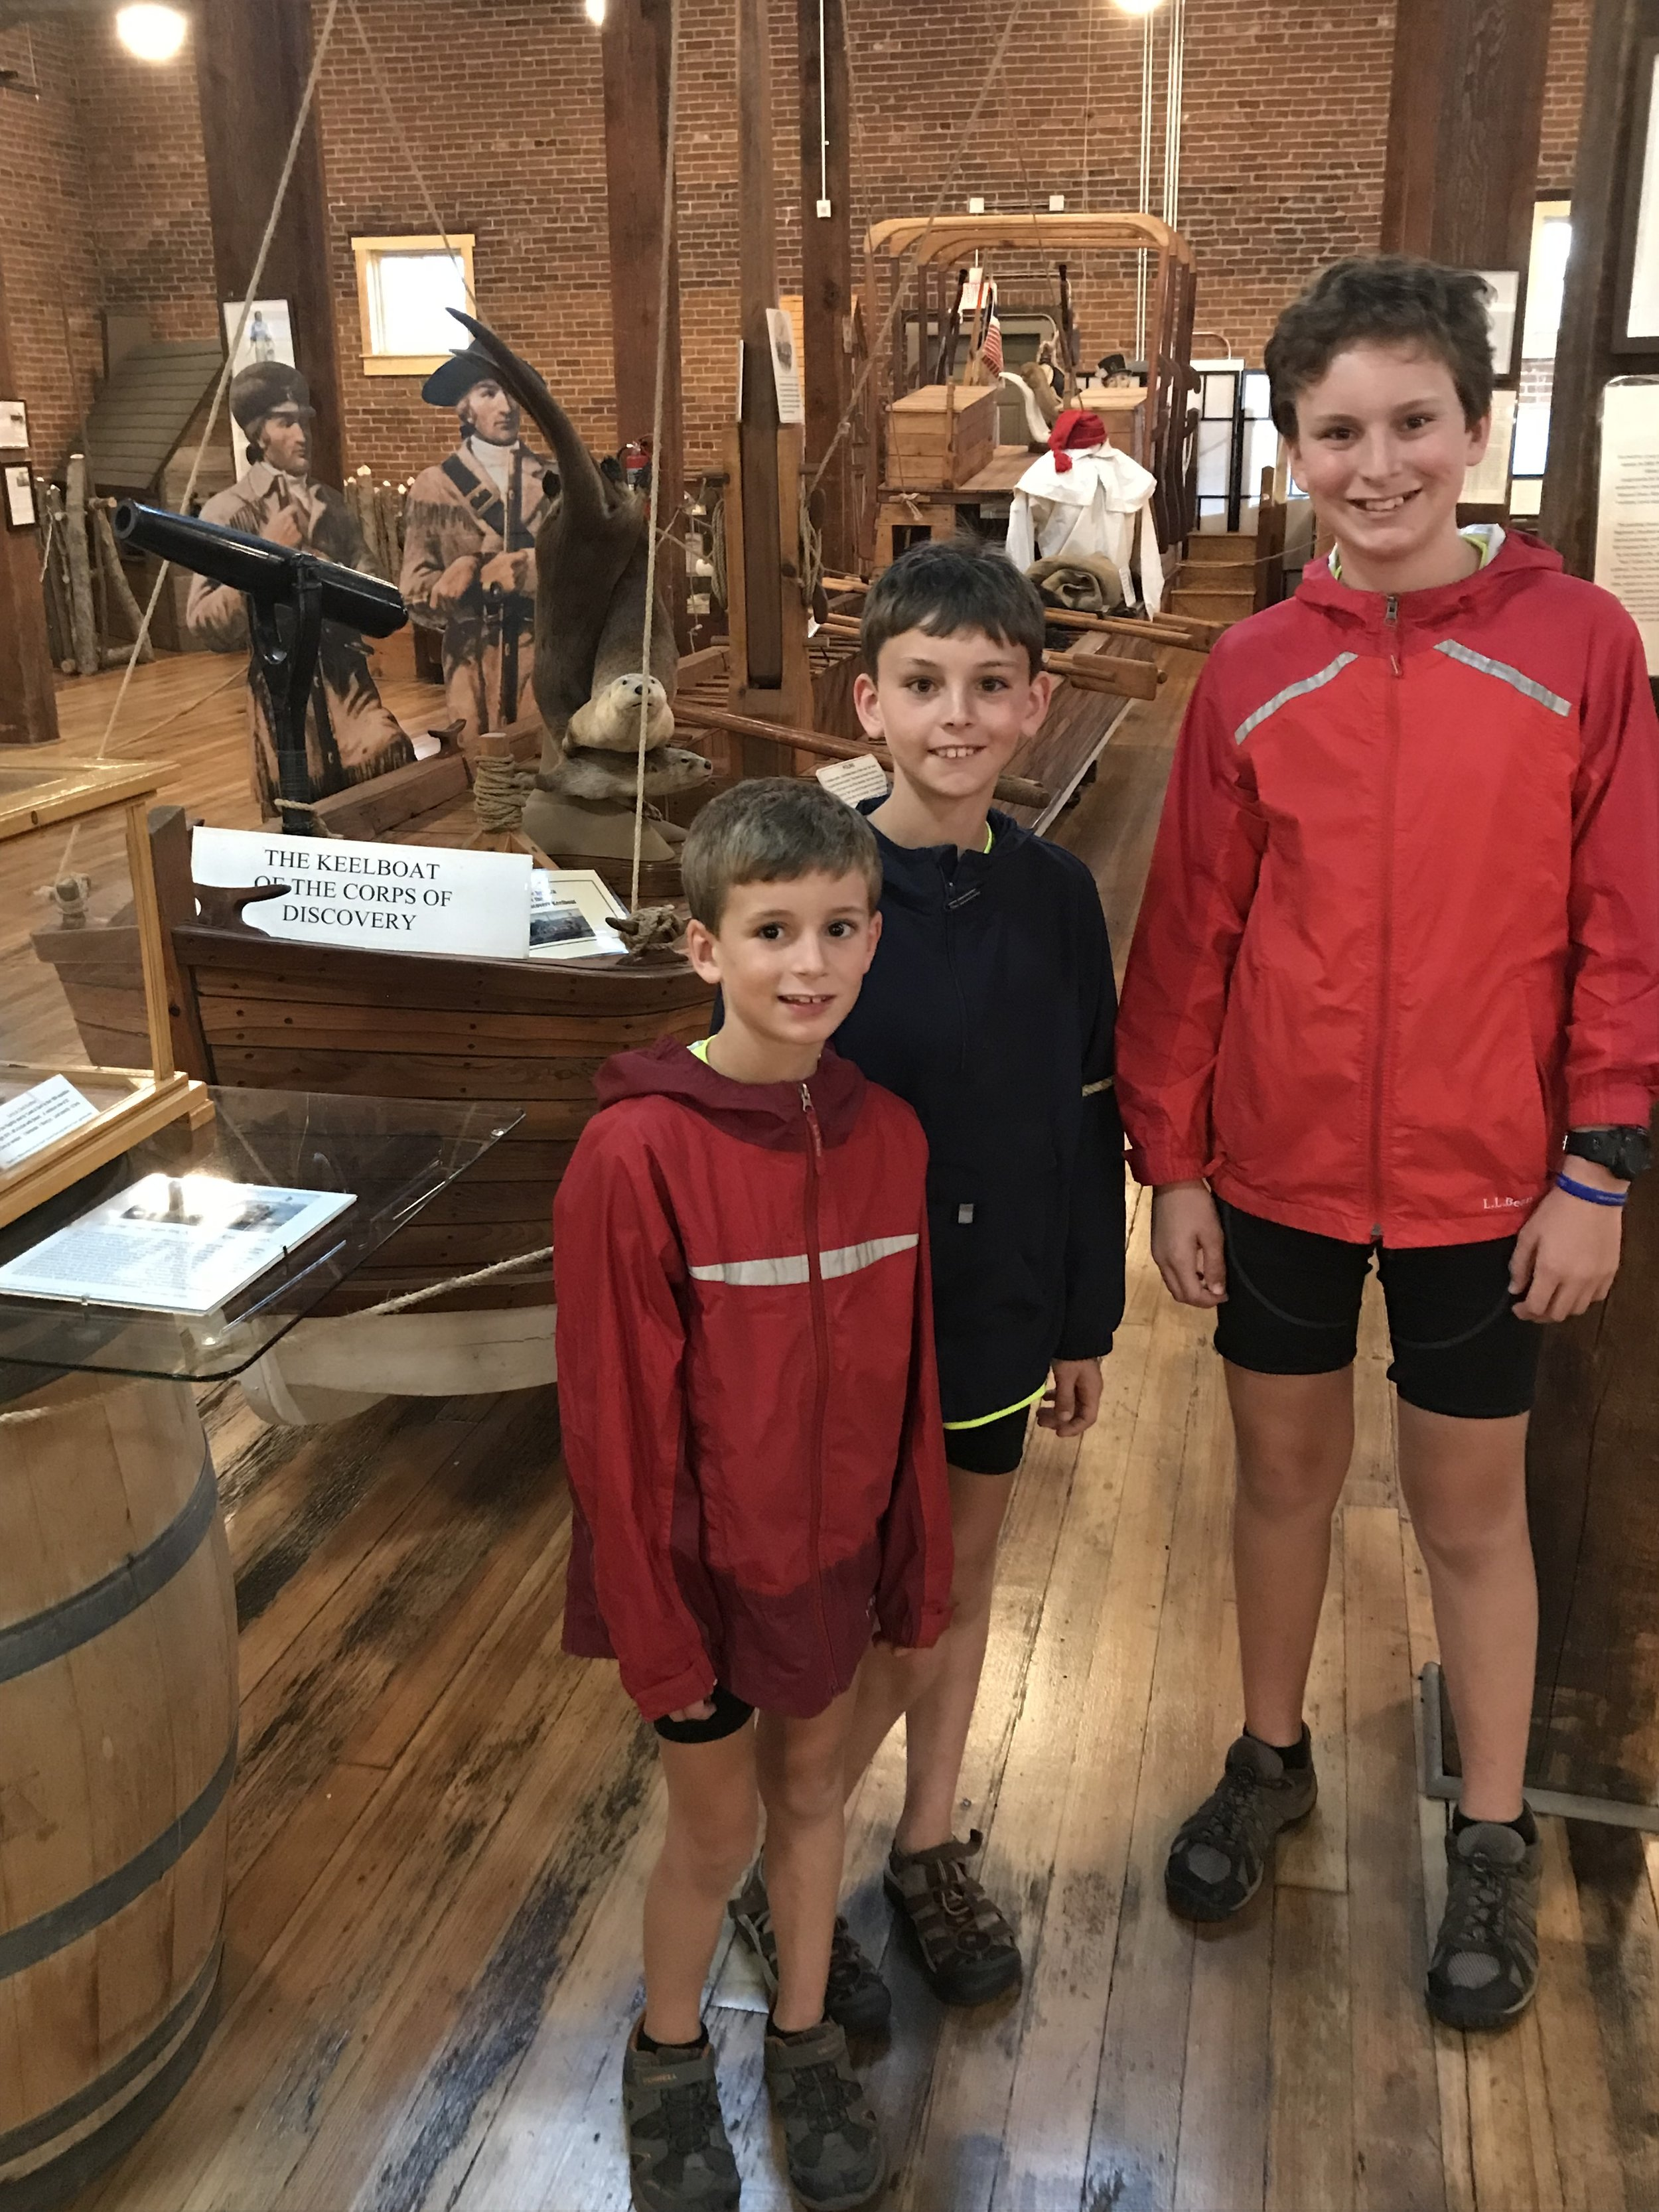 Boonville Museum and Visitors Center. The boys are standing in front of a half-scale replica of Lewis and Clark's keel boat.